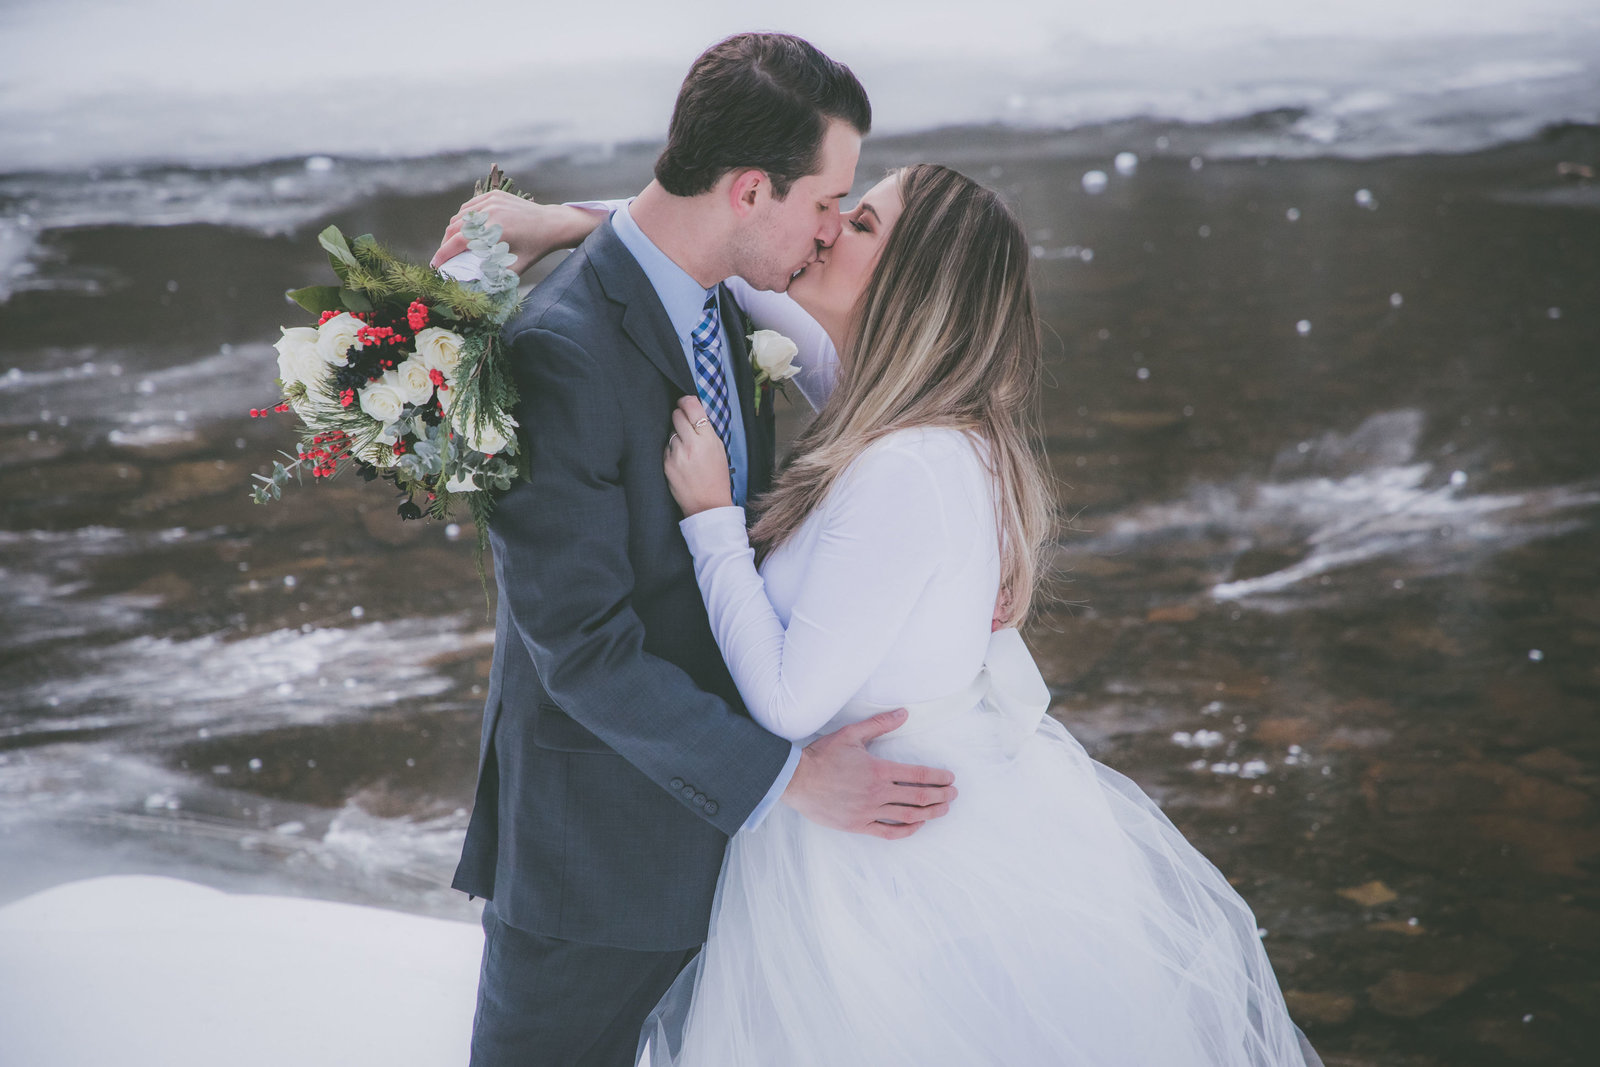 Couple kisses during their winter elopement in Upstate New York.